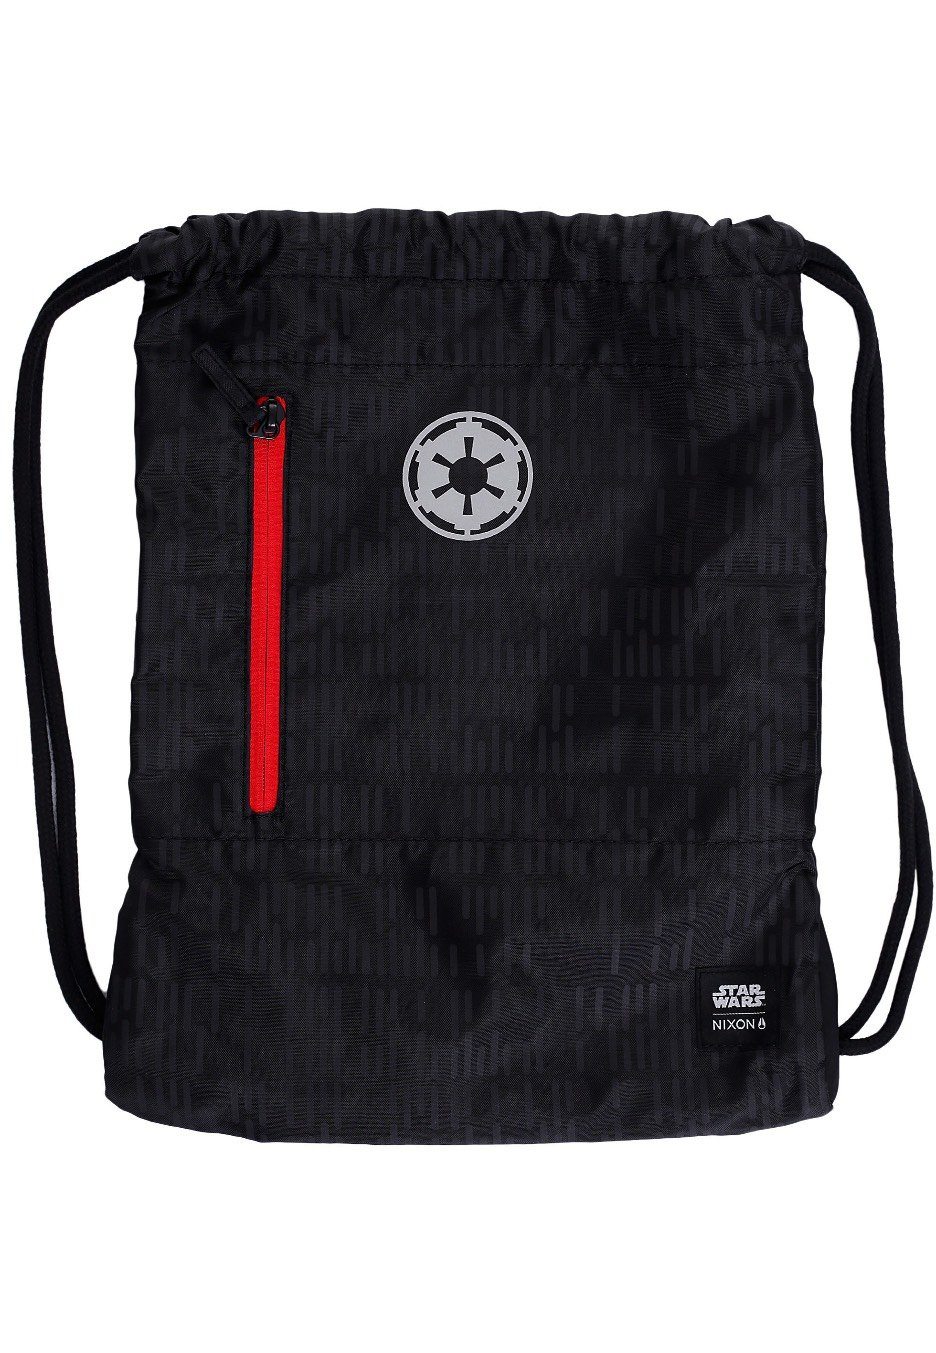 f06520251b6 Nixon x Star Wars - Everyday SW Vader Black Drawstring - Backpack -  Impericon.com UK